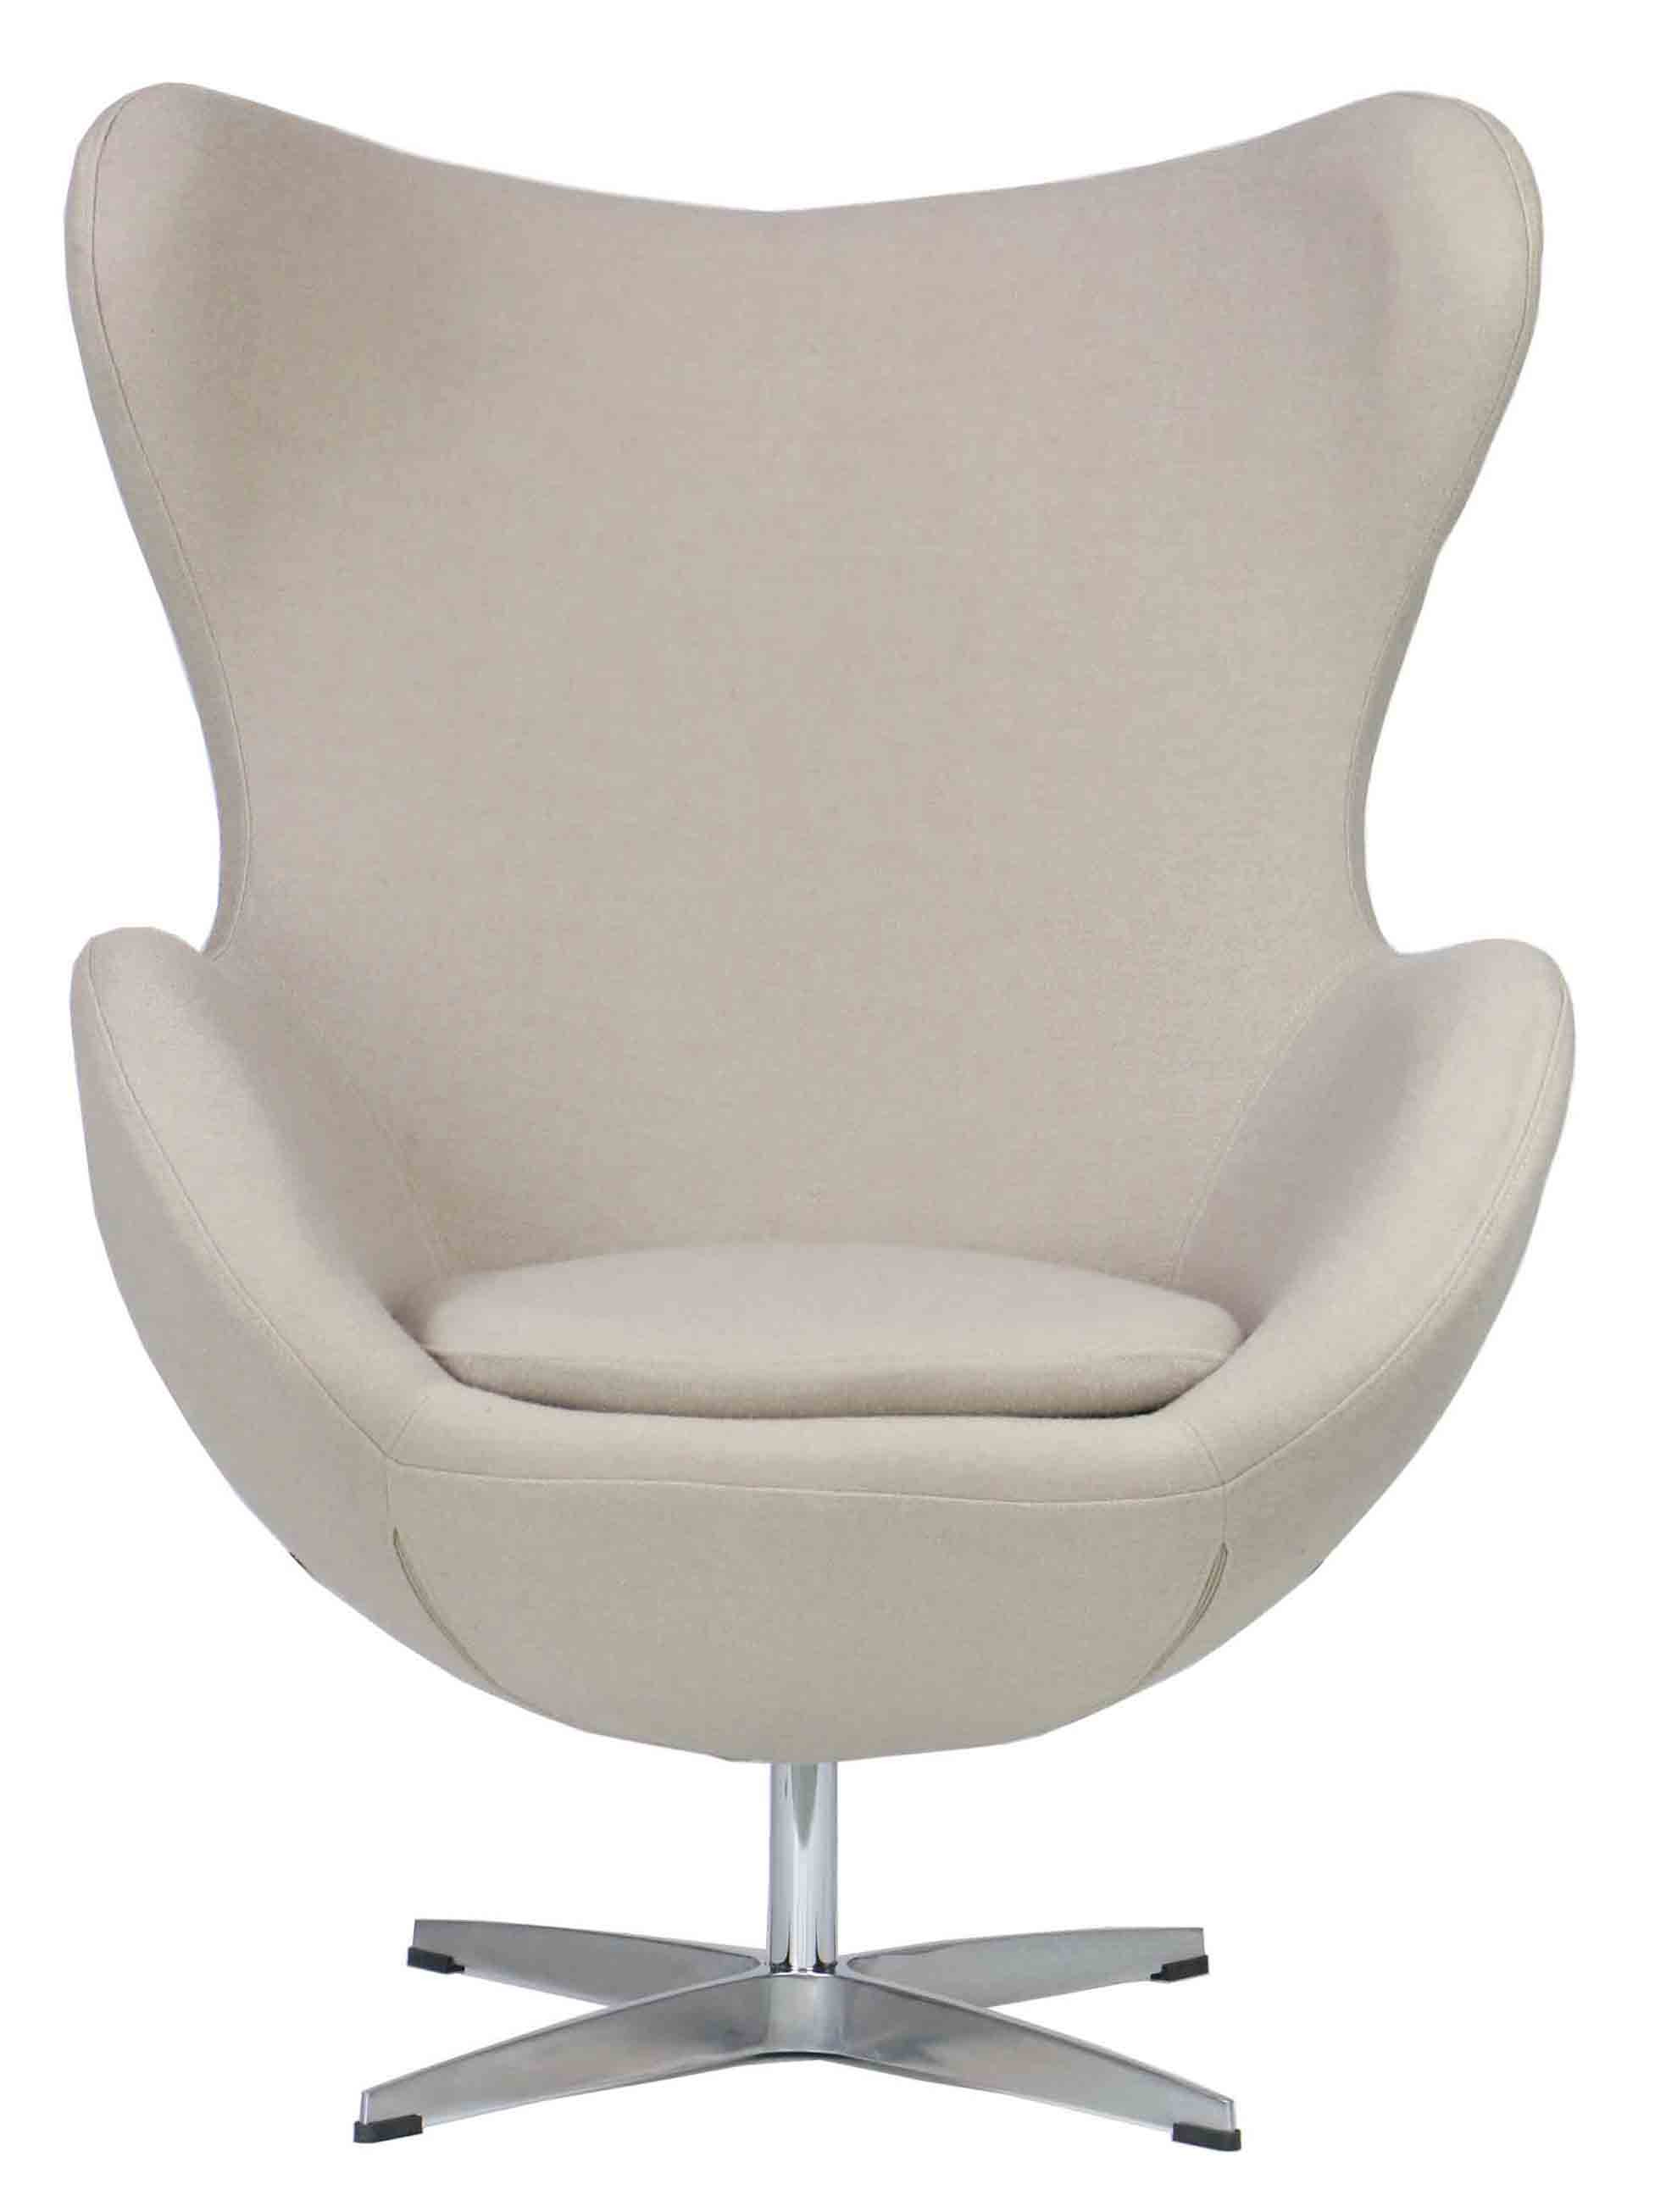 Egg Chairs Designer Replica Egg Chair In Cream Furniture And Home